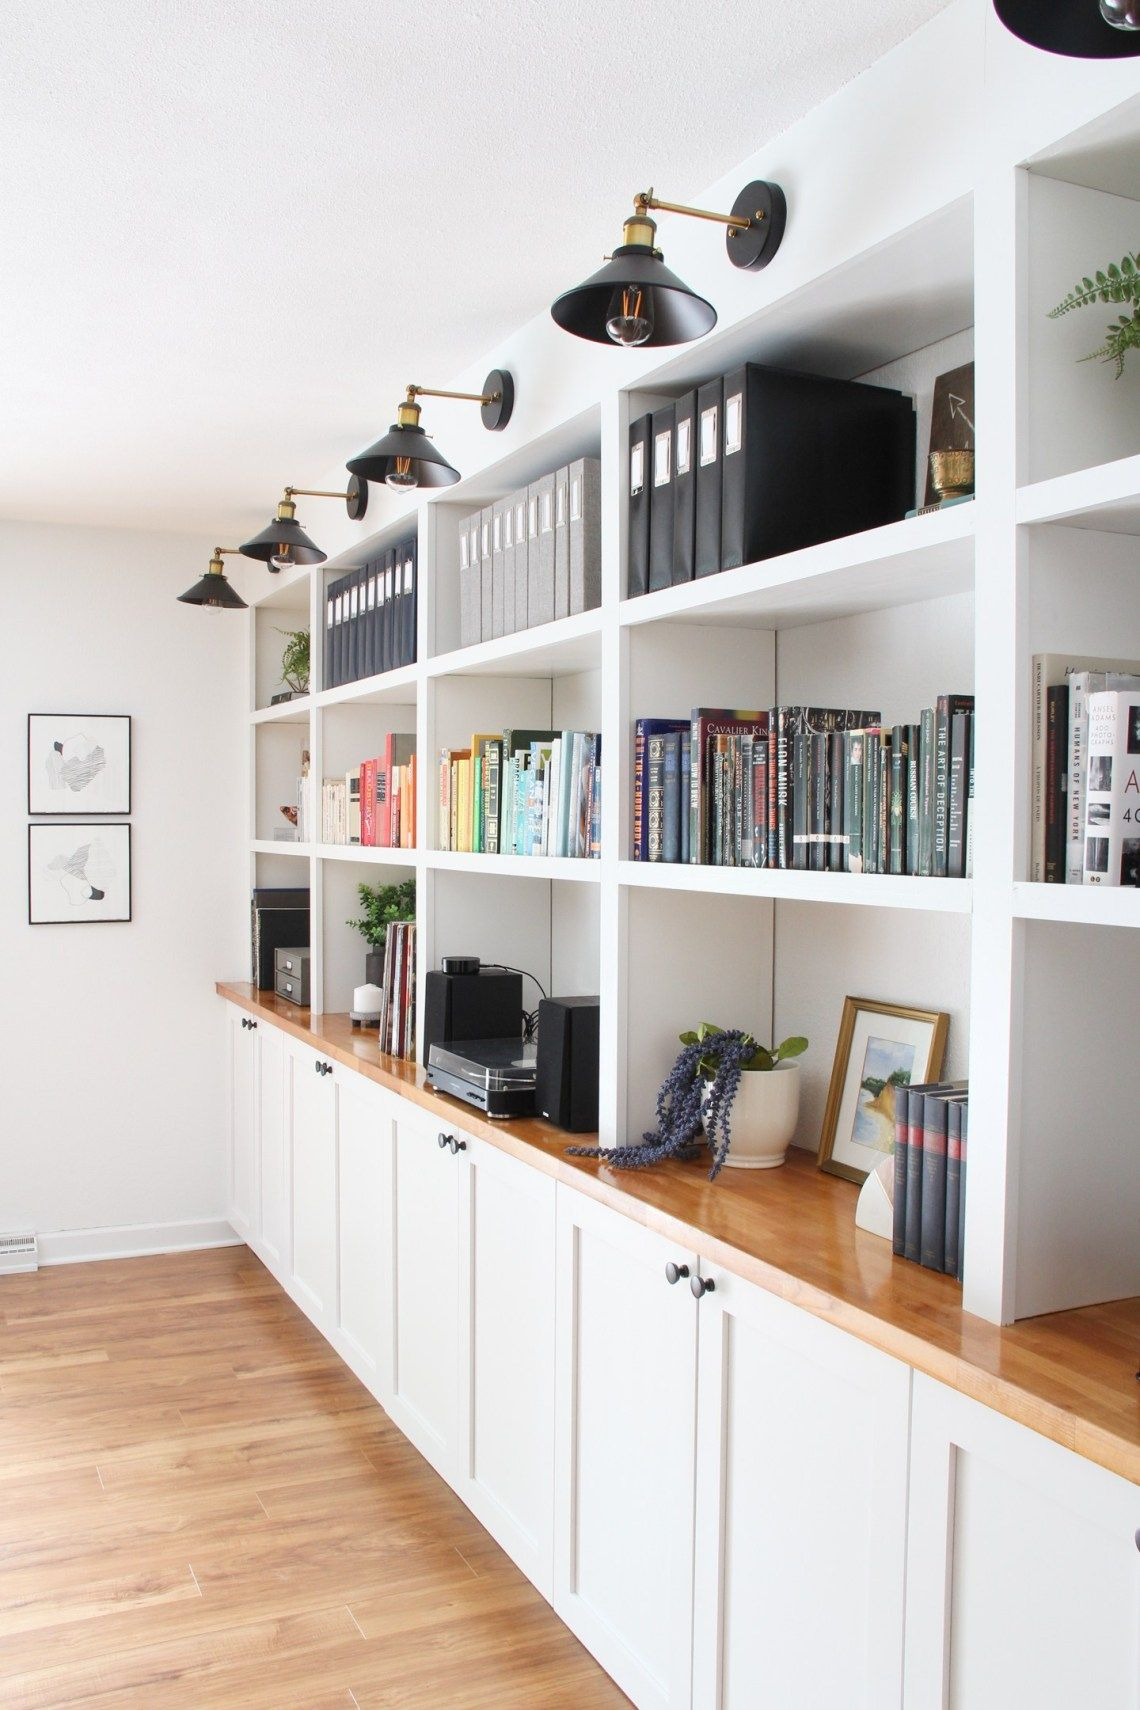 Ikea Built In Hacks That Will Save You Money Ikea Built In Living Room Built Ins Home Office Cabinets